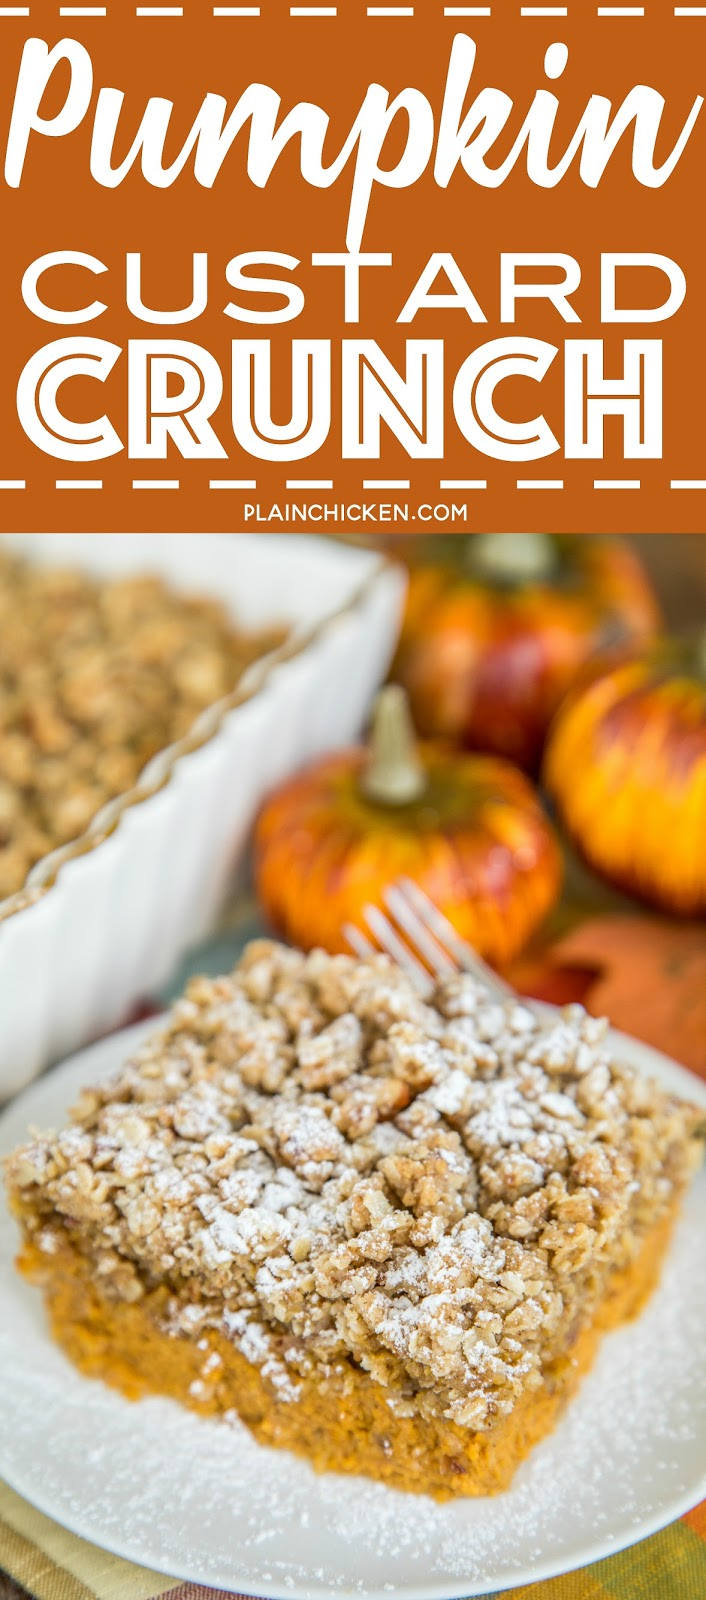 Pumpkin Custard Crunch - quick pumpkin custard topped with a crunchy granola topping. SO good! Great for holiday meals! Can make ahead of time and warm up when ready to serve. Top with powdered sugar, whipped cream or ice cream. Took this to a party and it was gone in a flash! Such a great pumpkin dessert recipe!